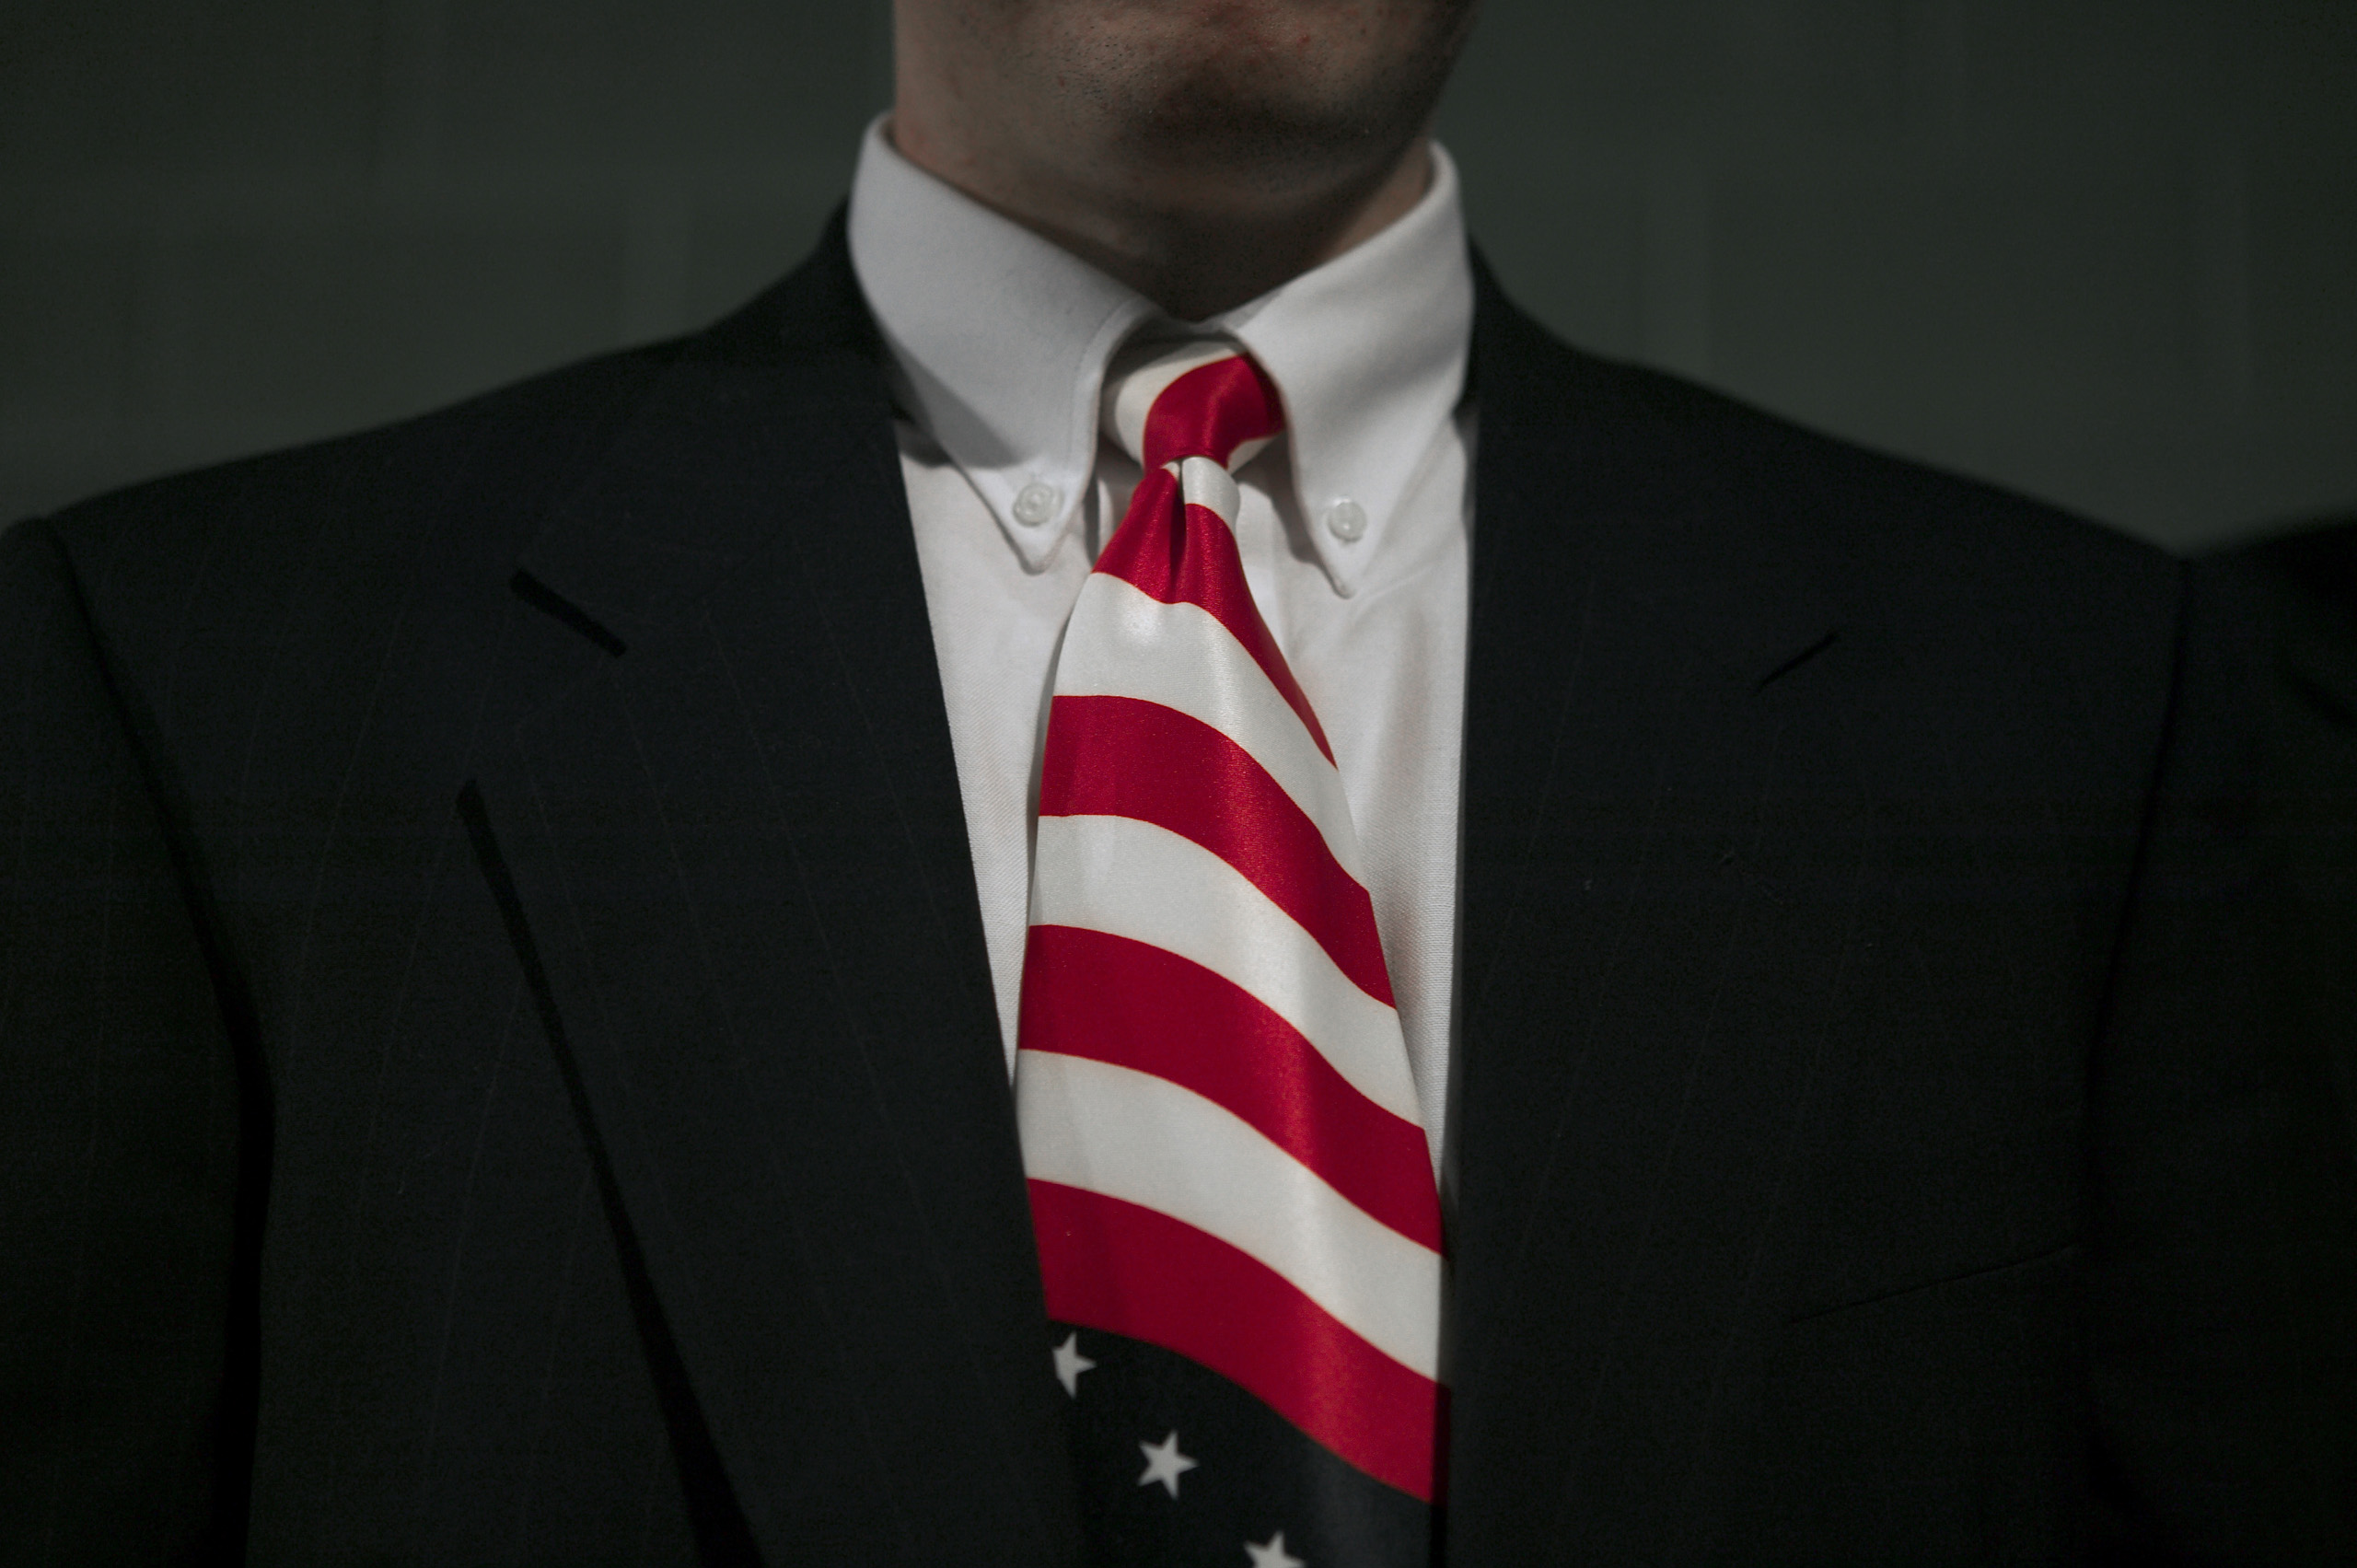 A supporter listens to U.S. President George W. Bush at an event in  Pennsylvania, Feb. 2004.